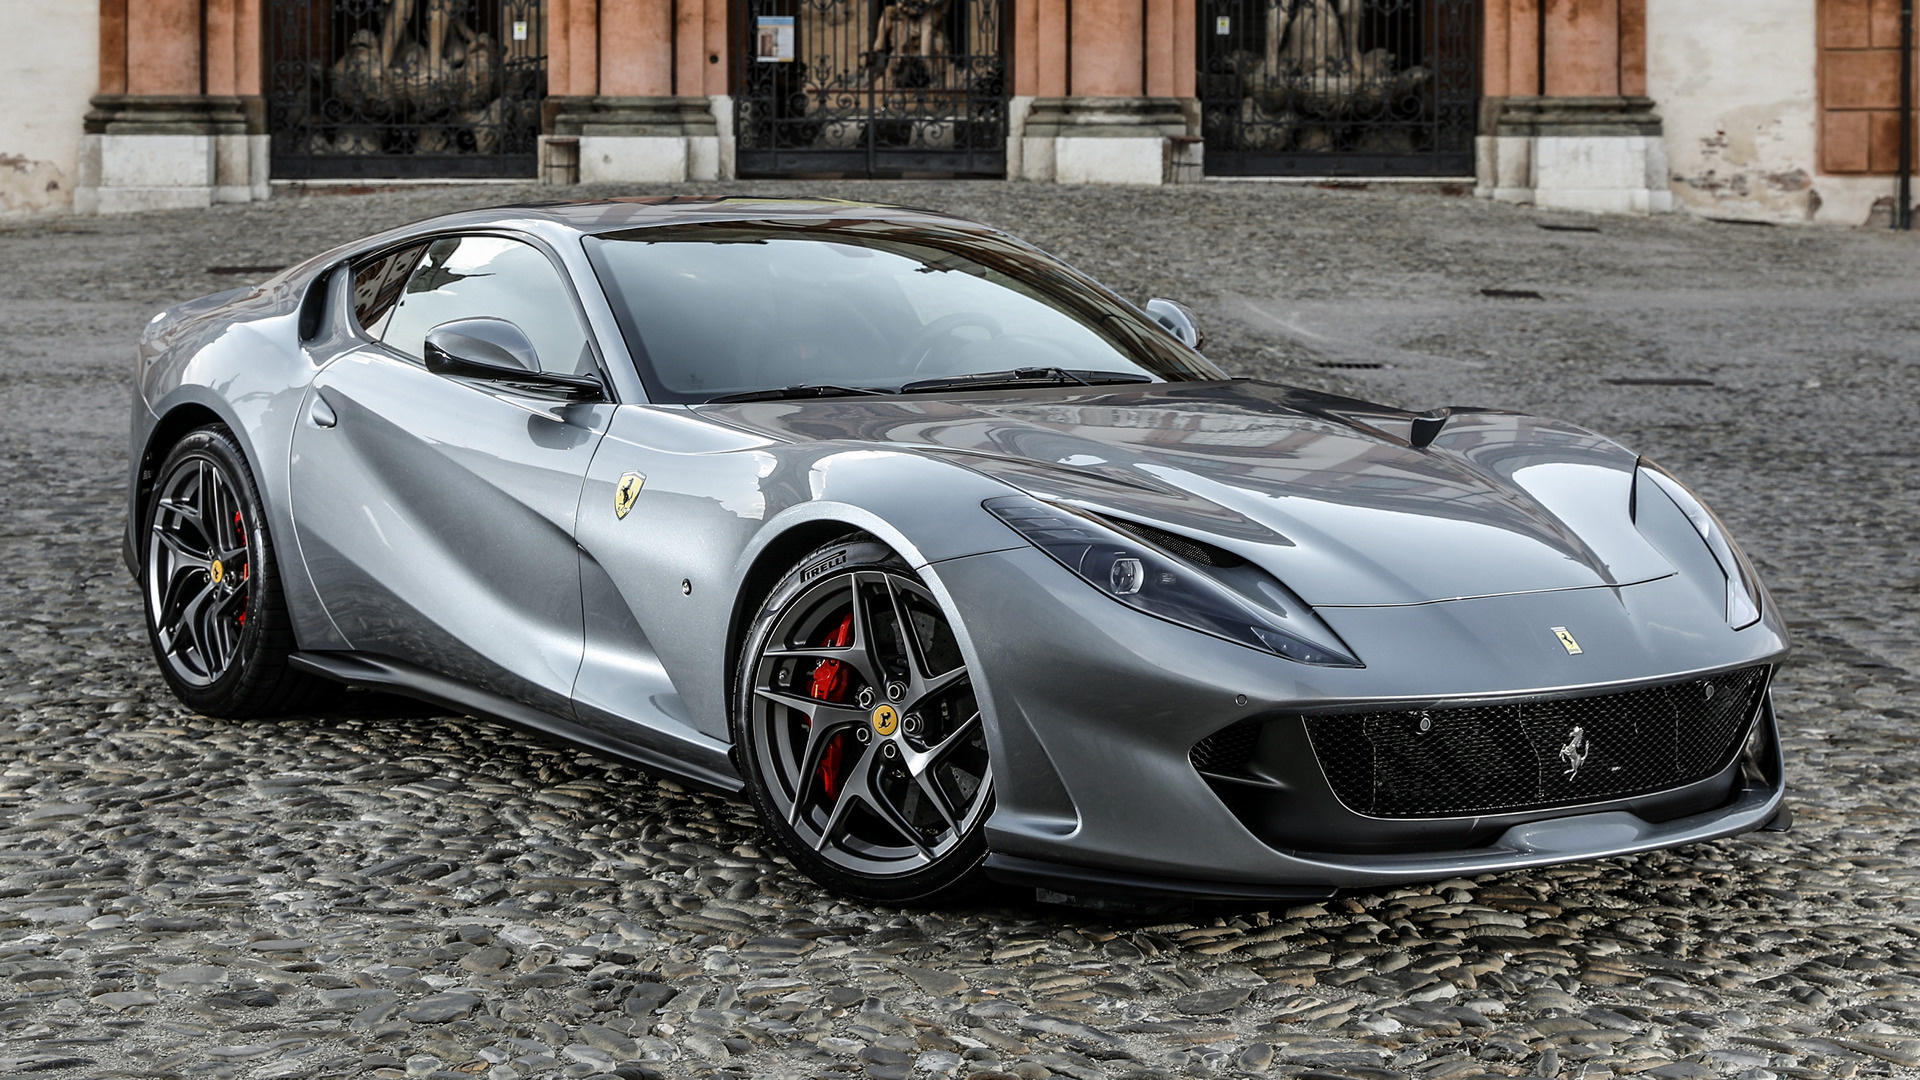 Ferrari 812 Superfast 2017 Wallpapers And Hd Images